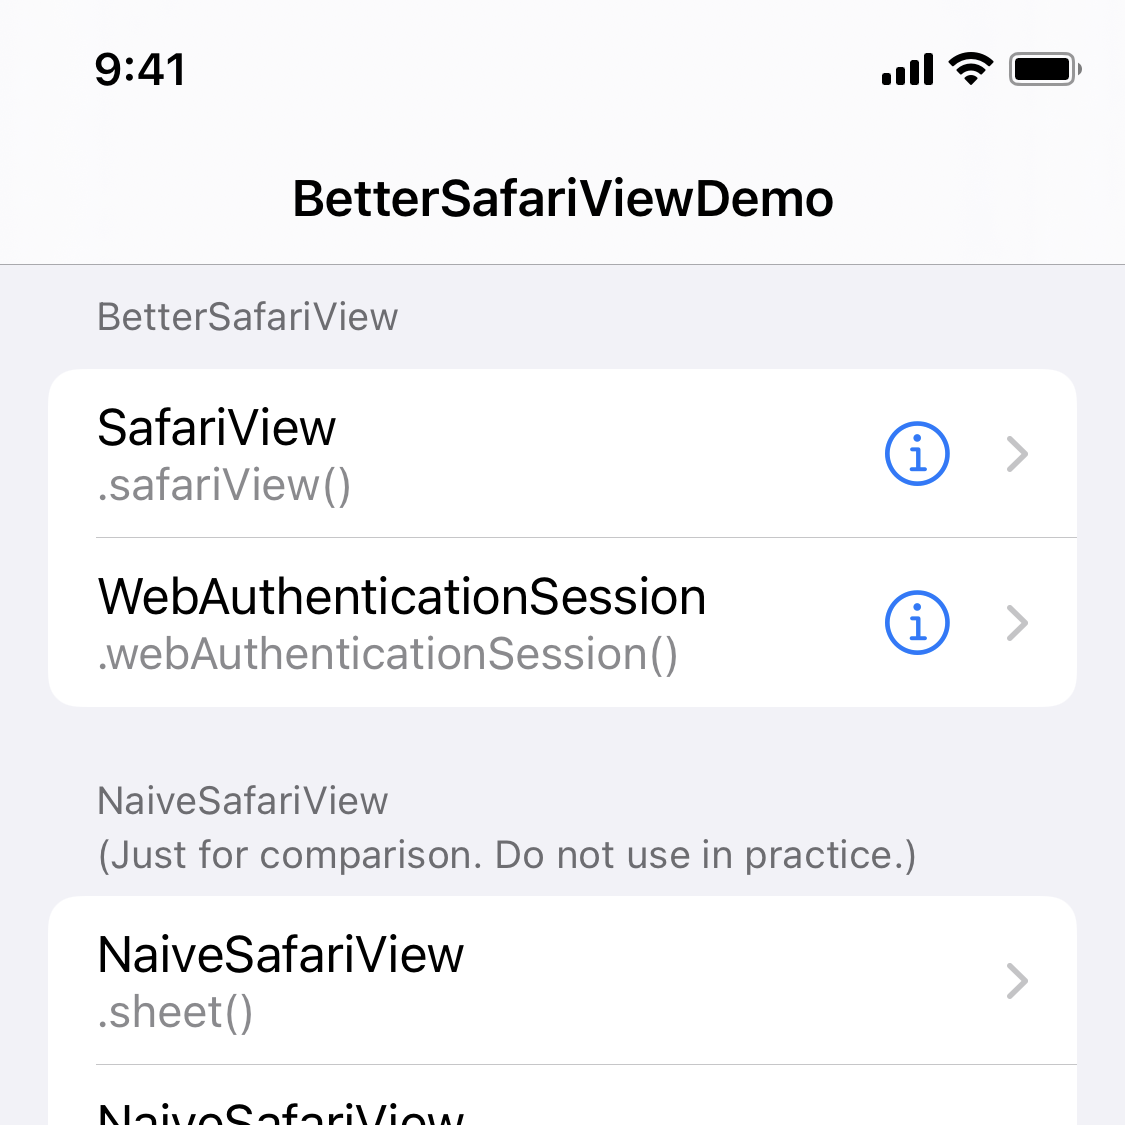 BetterSafariViewDemo-RootView